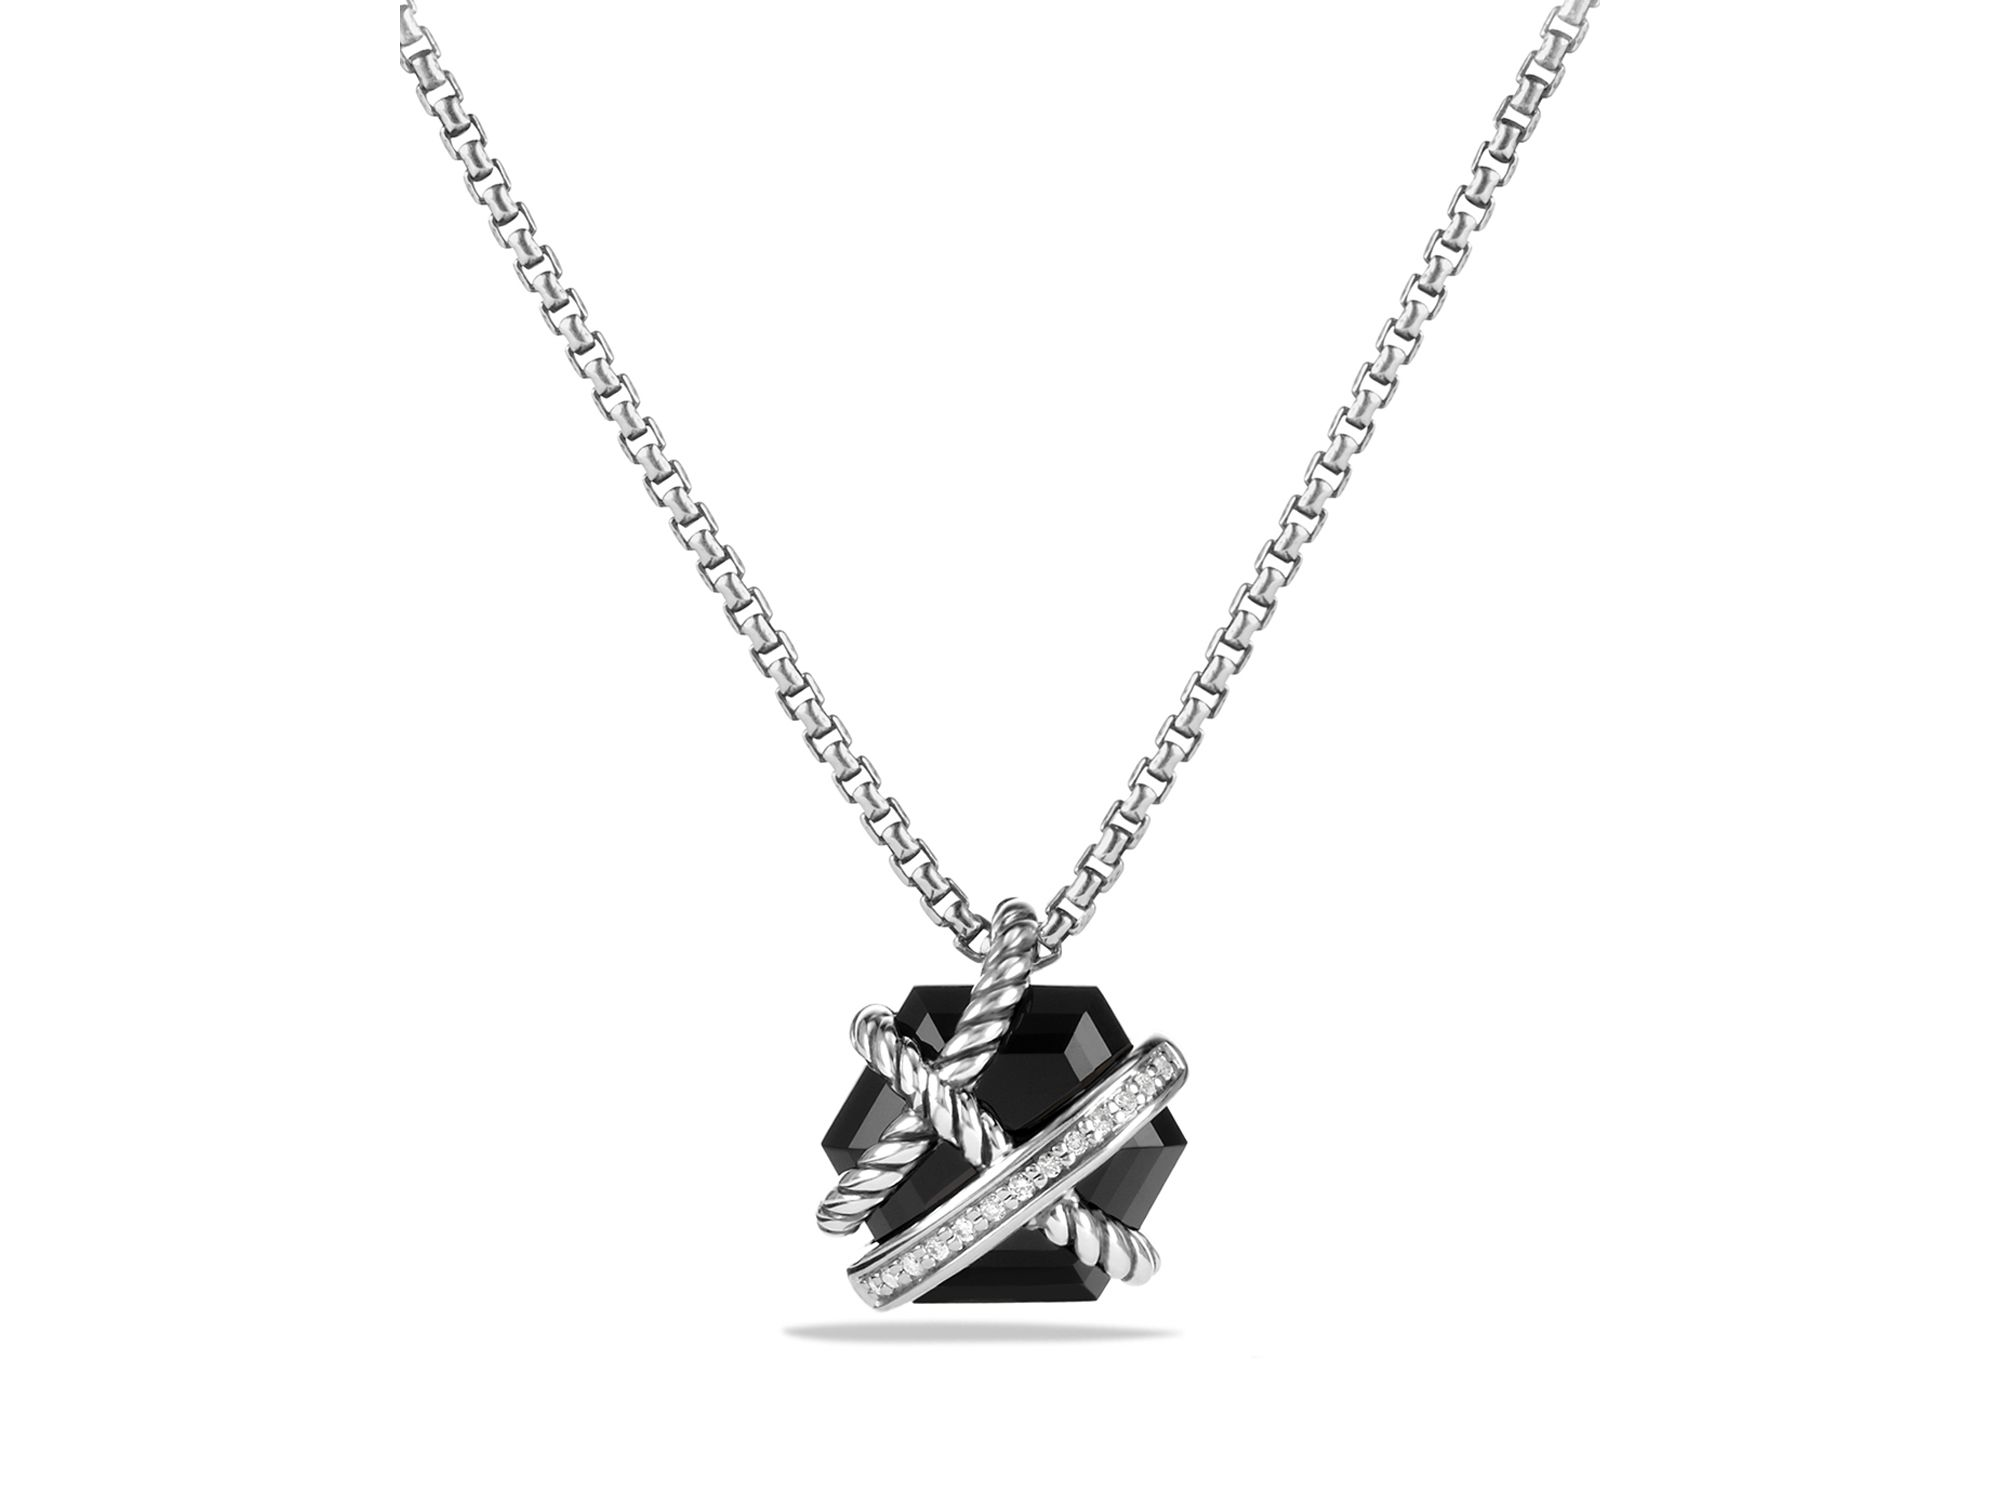 a714684437d7 Lyst - David Yurman Petite Cable Wrap Necklace With Black Onyx And ...